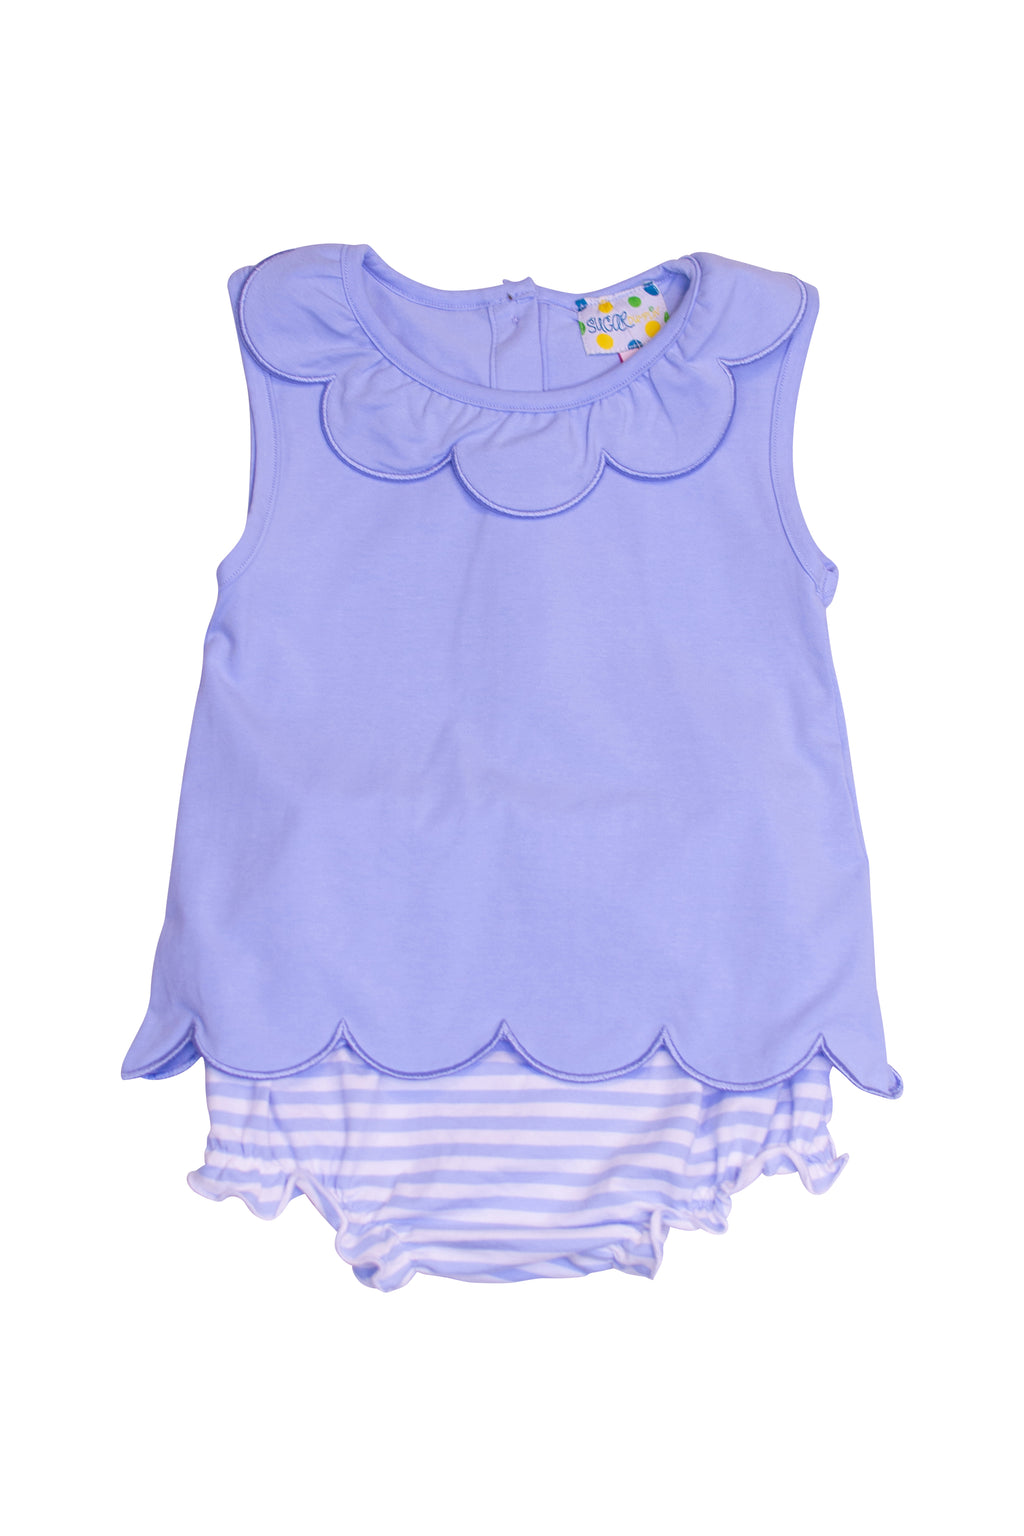 Girls Blue Knit Scalloped Diaper Set